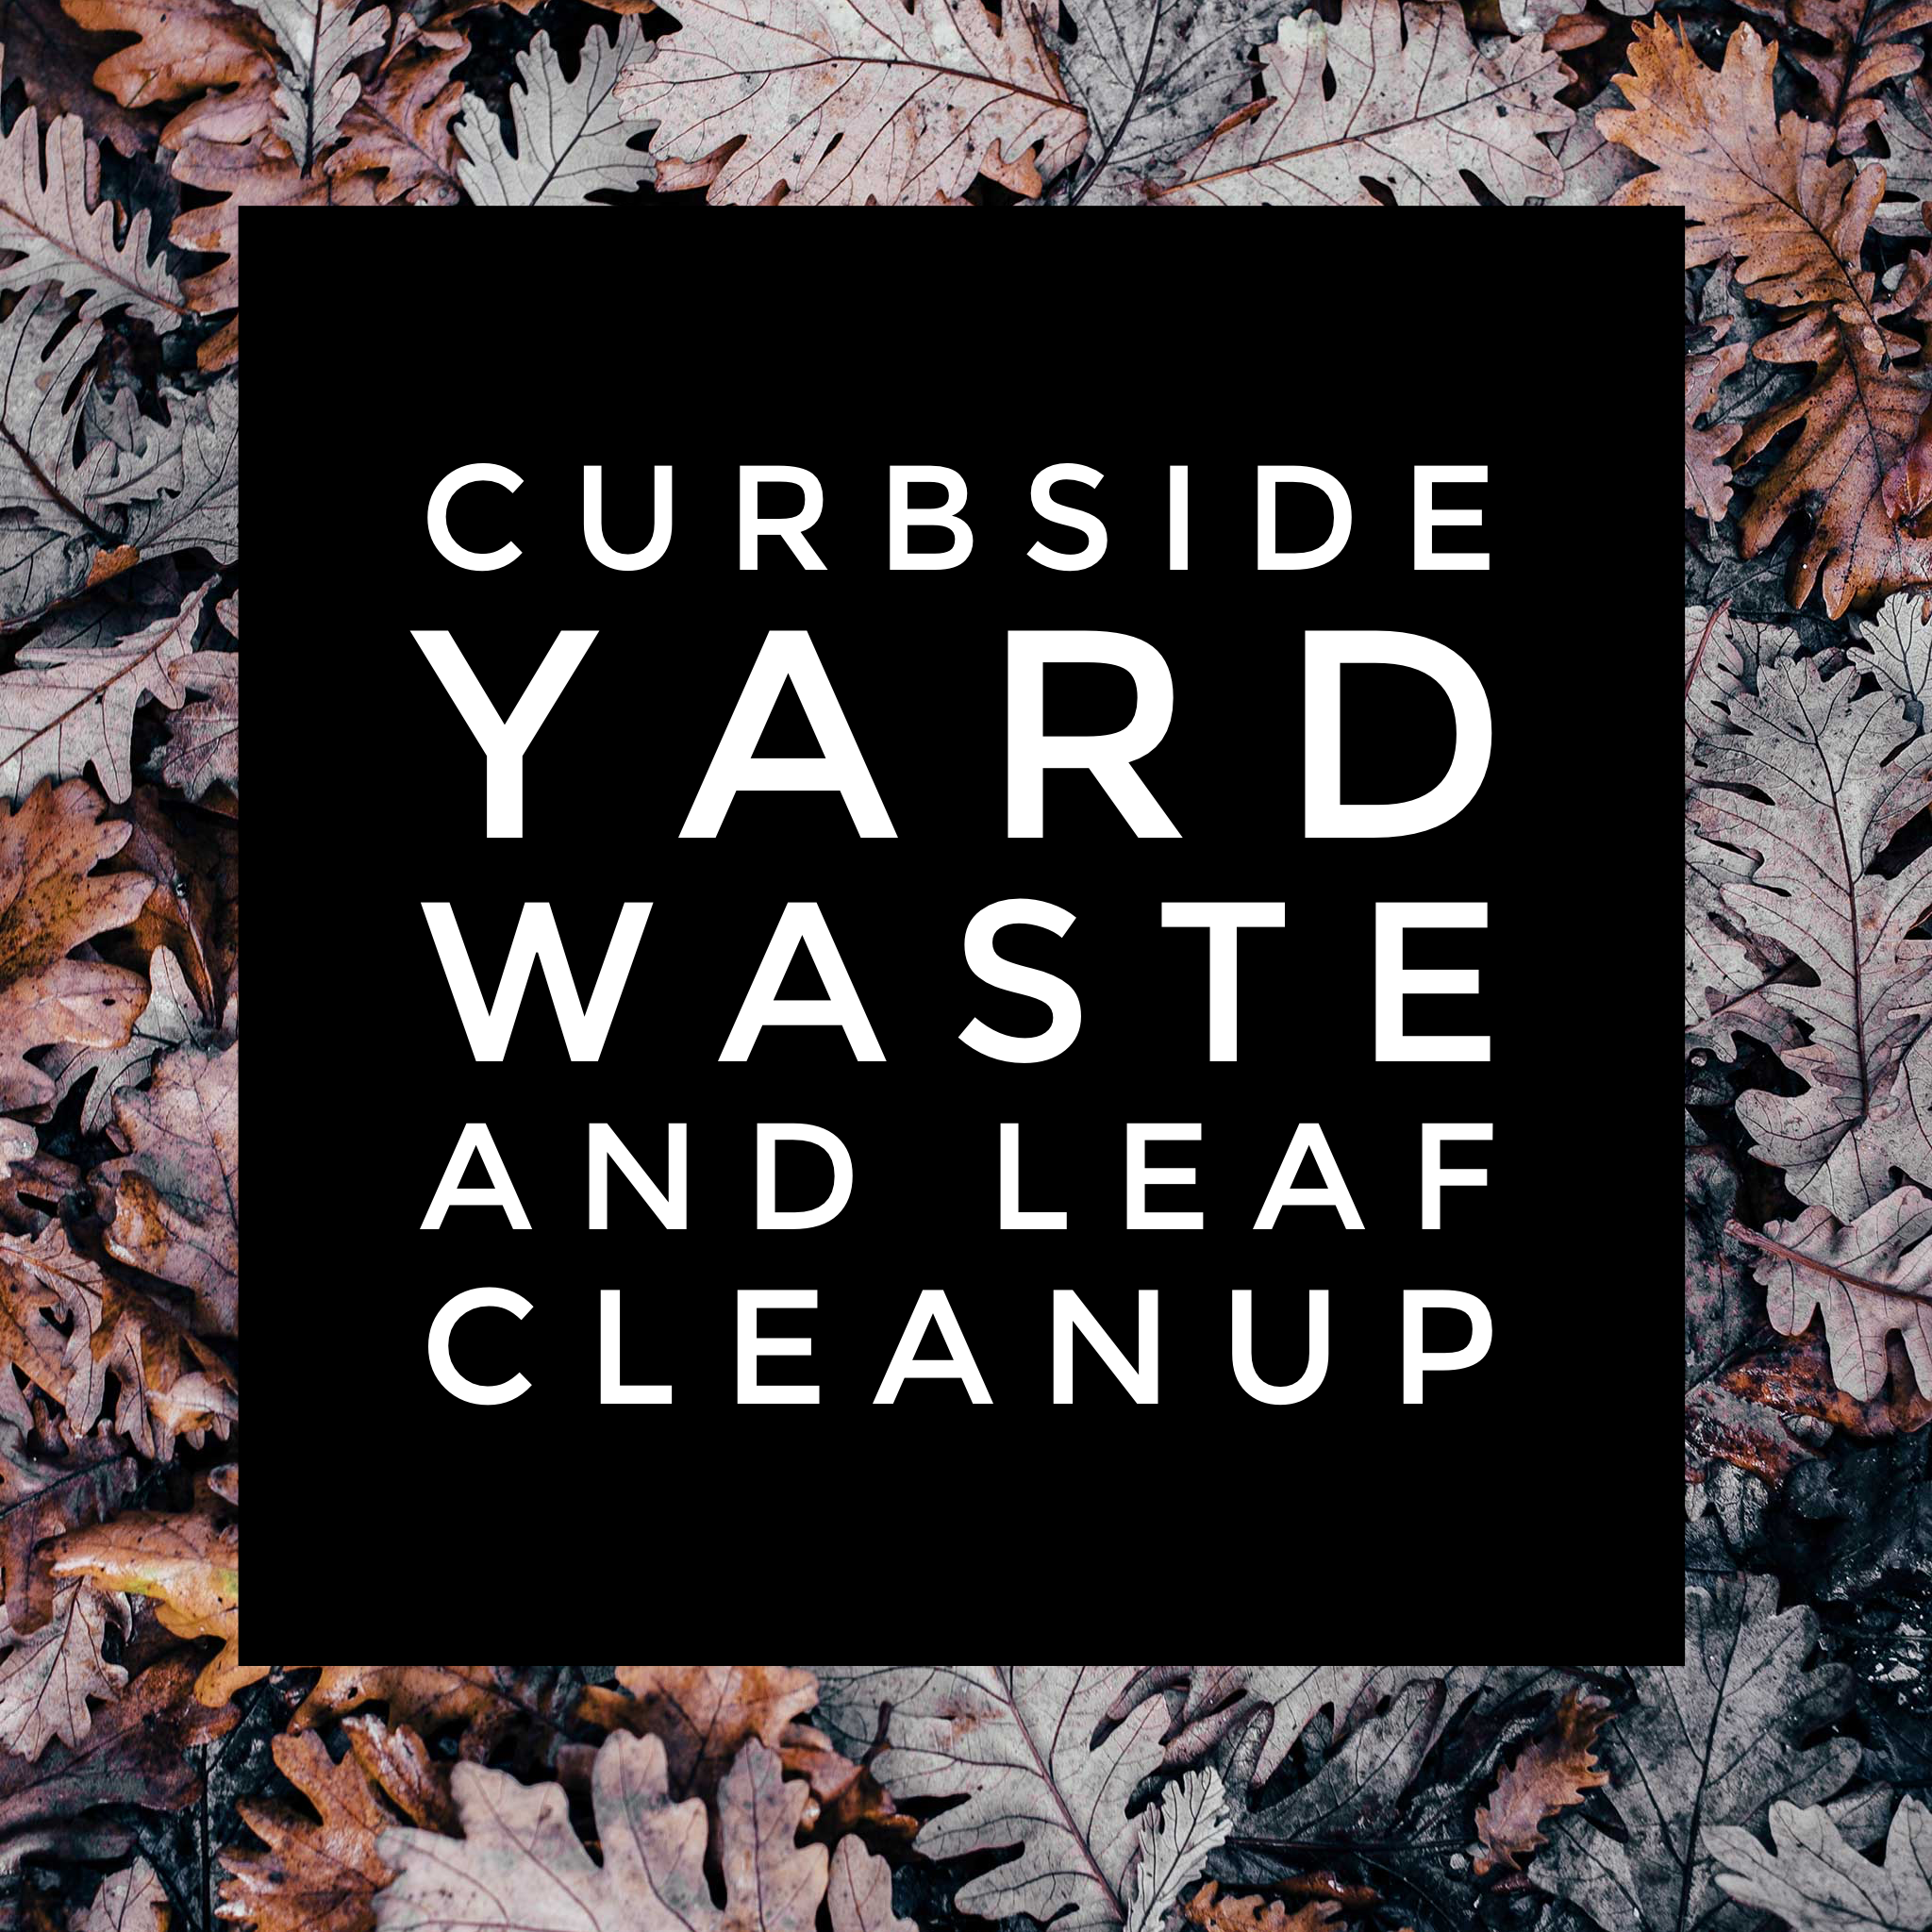 Curbside Yard Waste and Leaf Cleanup